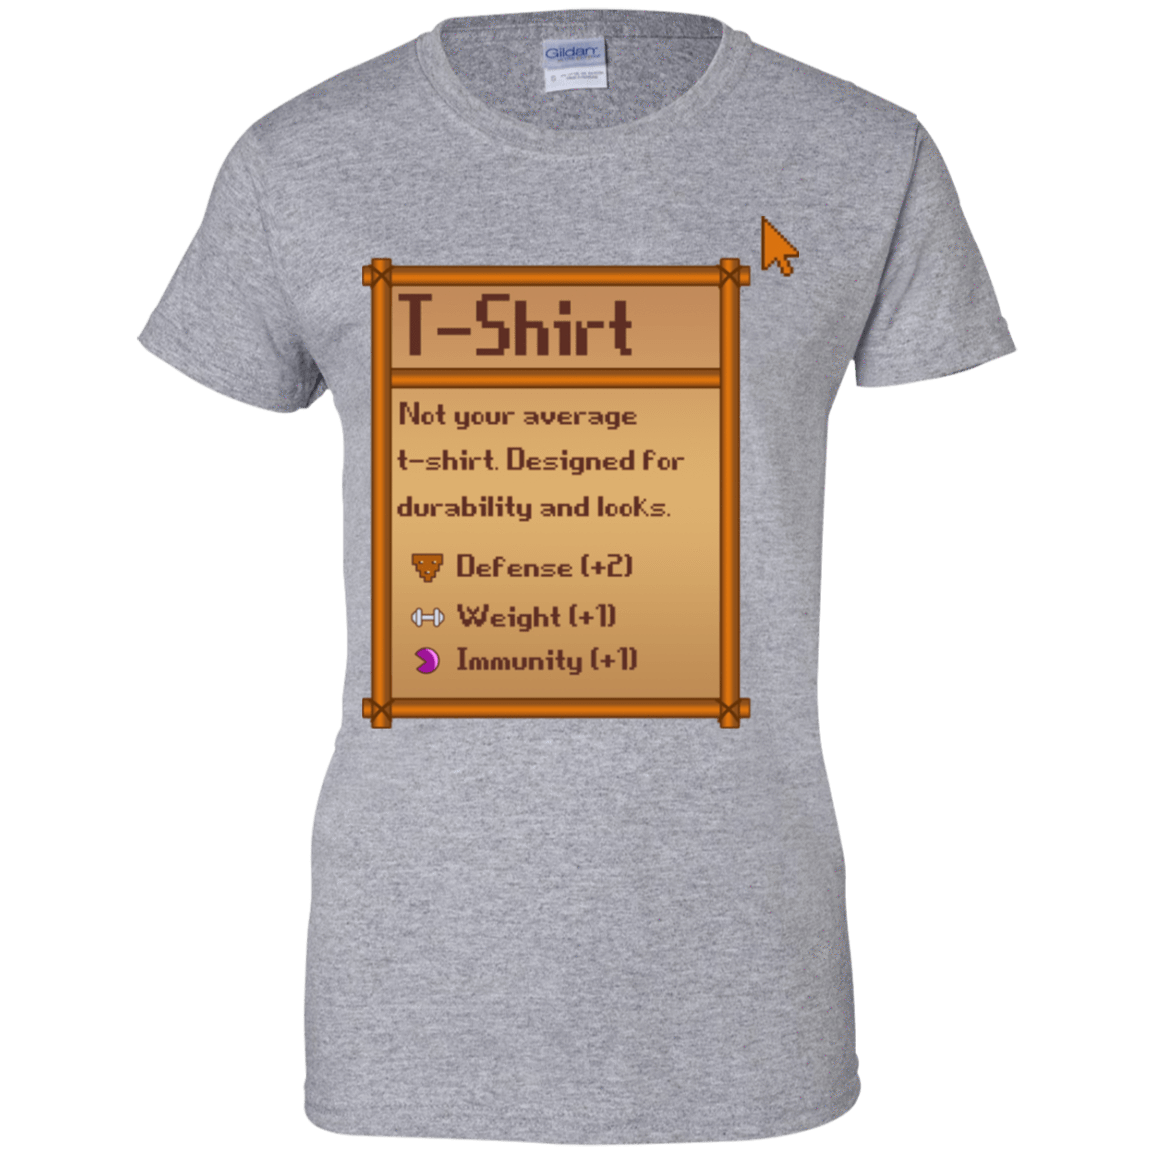 Stardew Valley T-Shirt 939-9265-72955966-44821 - Tee Ript